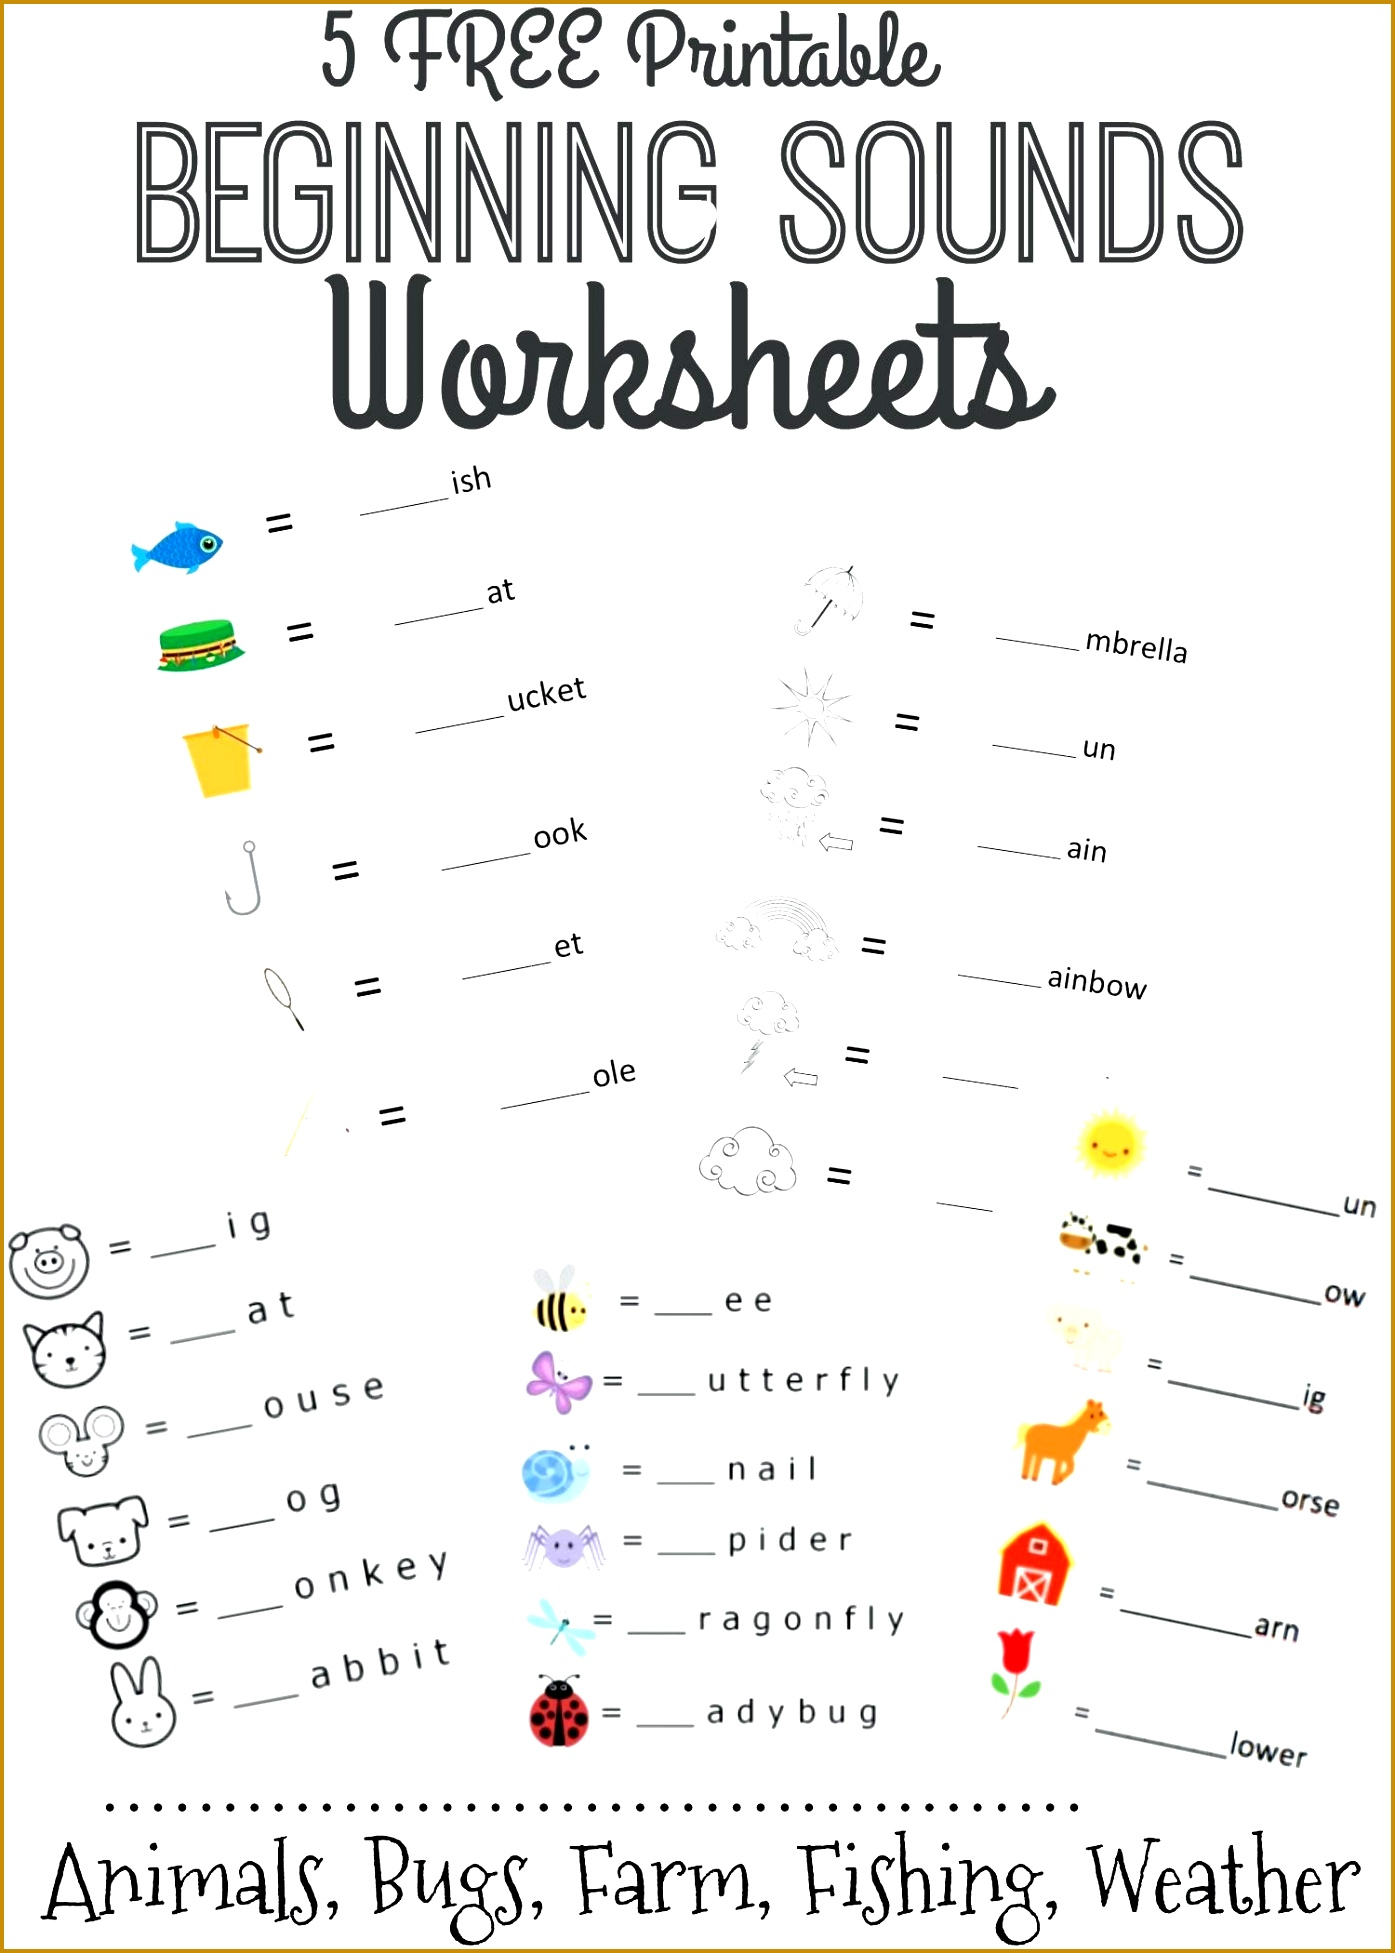 worksheet Literacy Printable Worksheets 5 Free Beginning Sounds Letter For Year 1 Uk 19531395